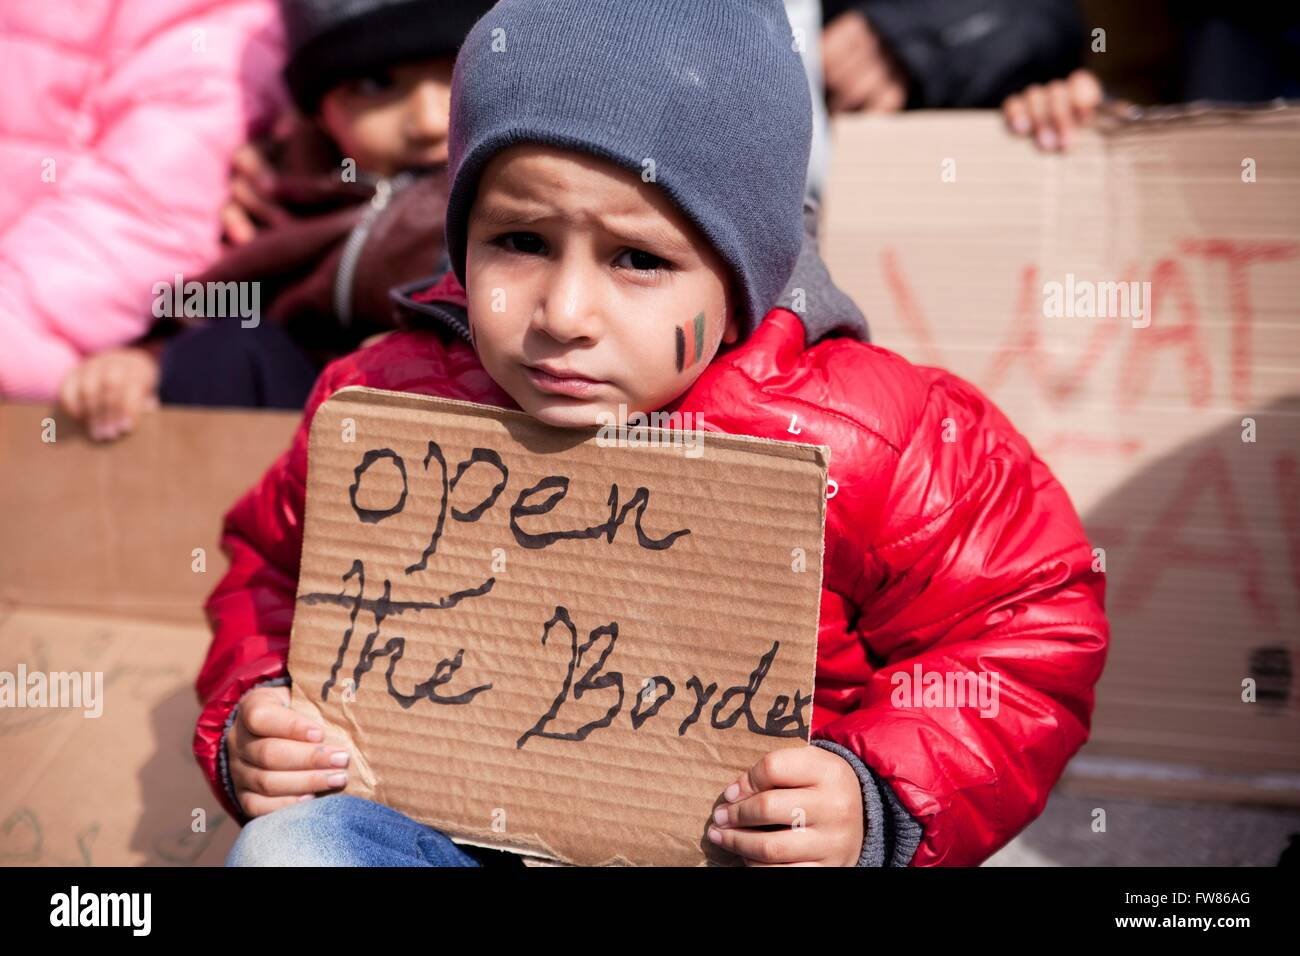 Afghan refugee child at habour of Piraeus. Refugee with sign 'Open the border', demanding opening of Greek - Stock Image